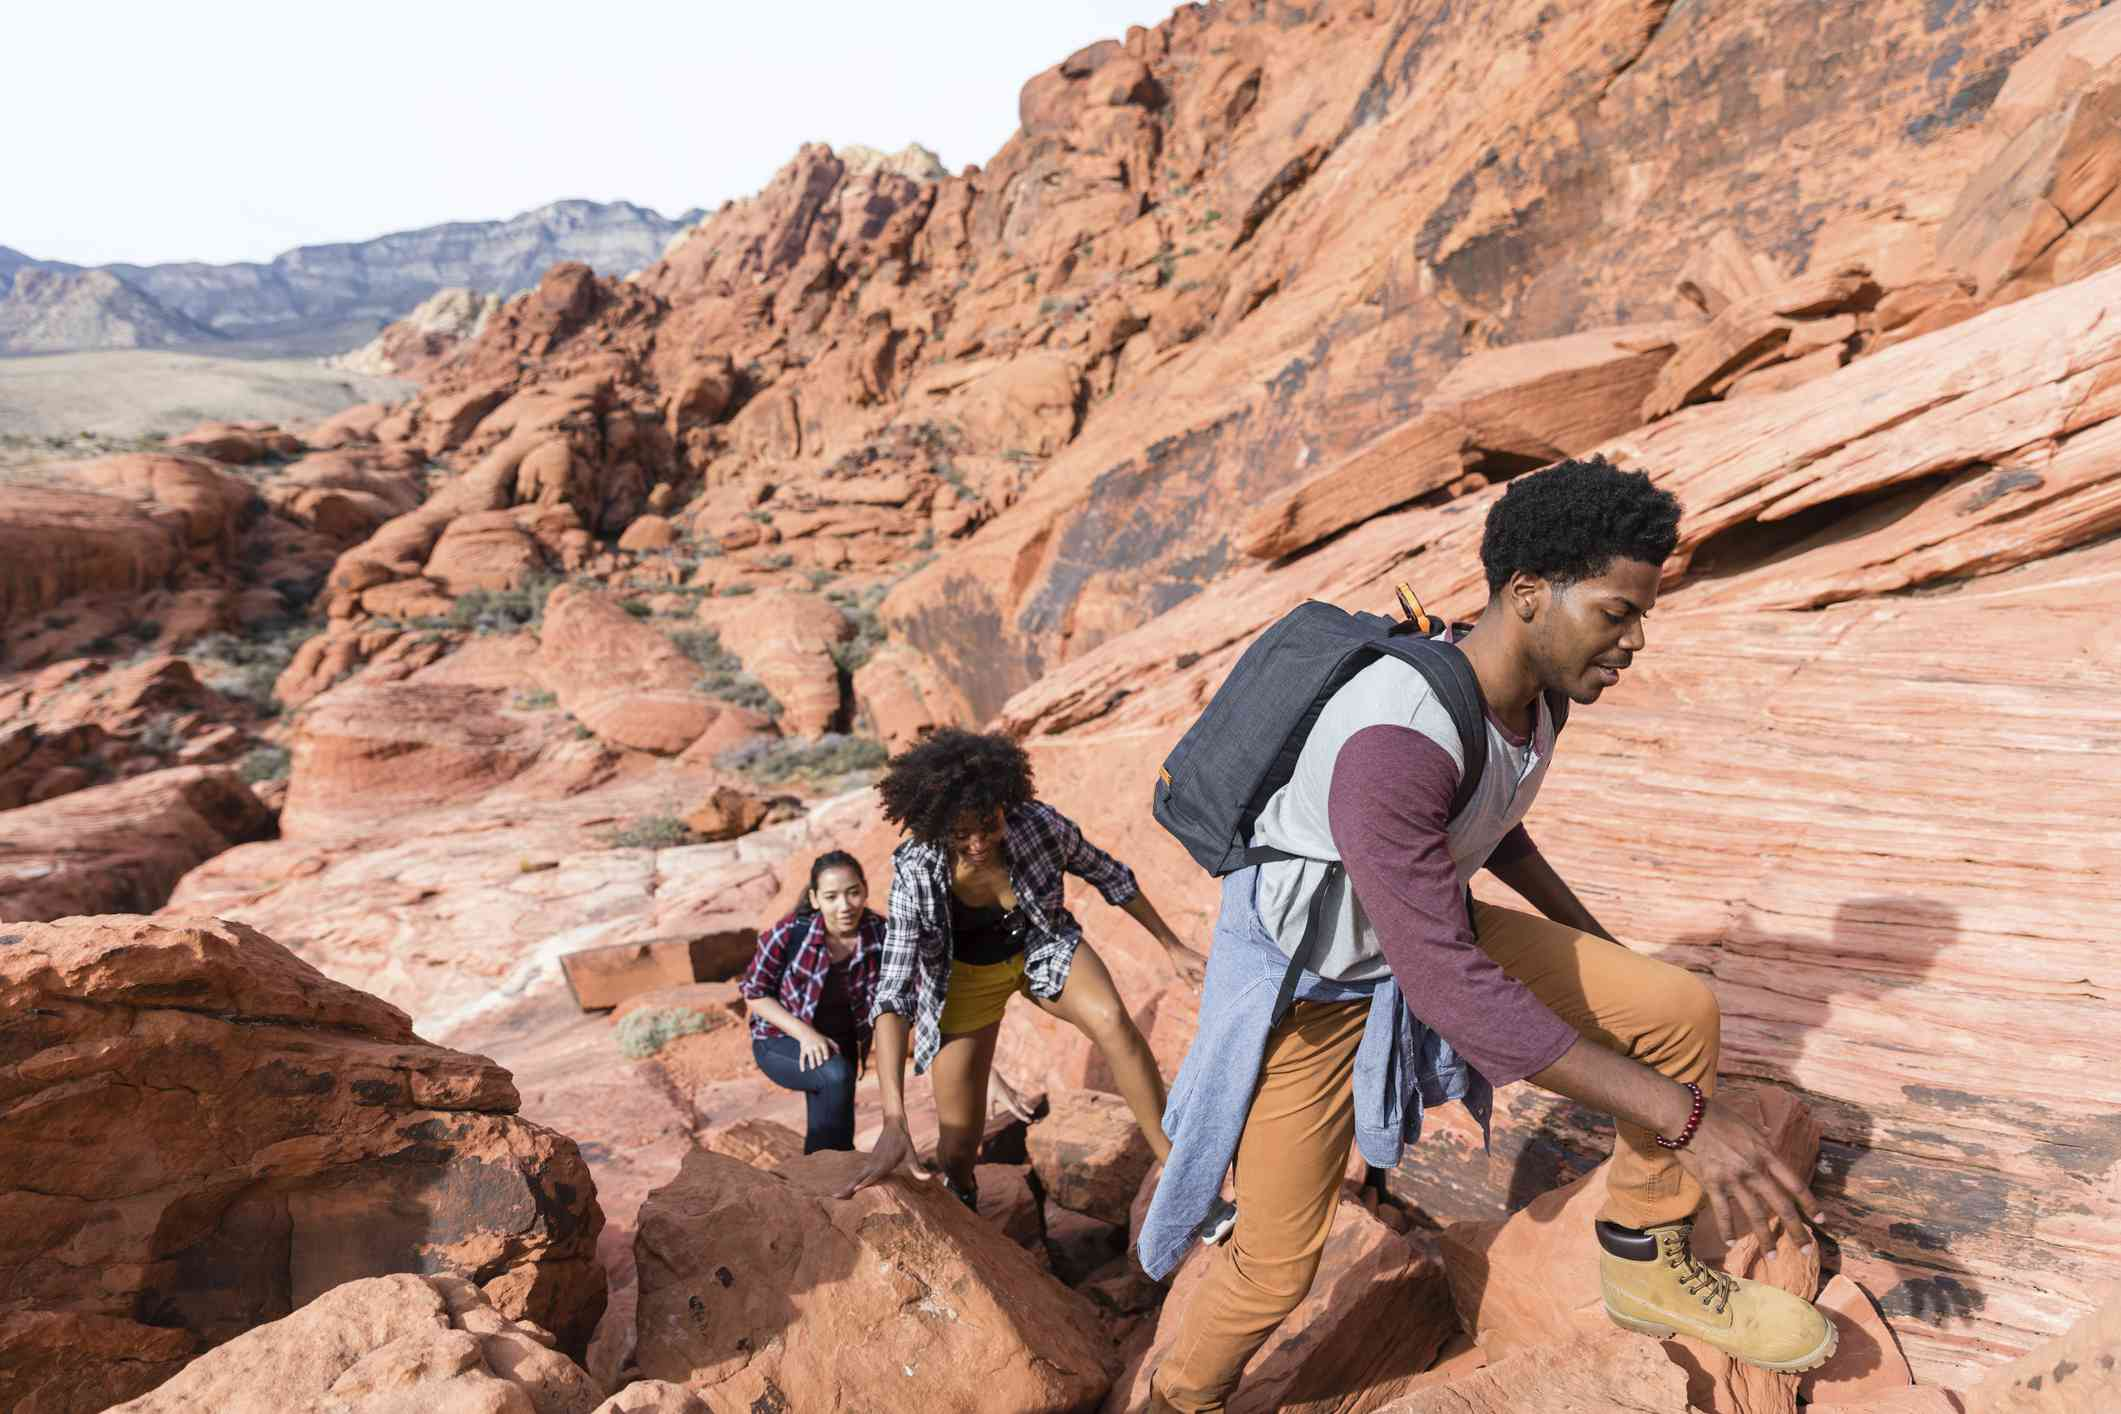 Friends hiking over rock formations